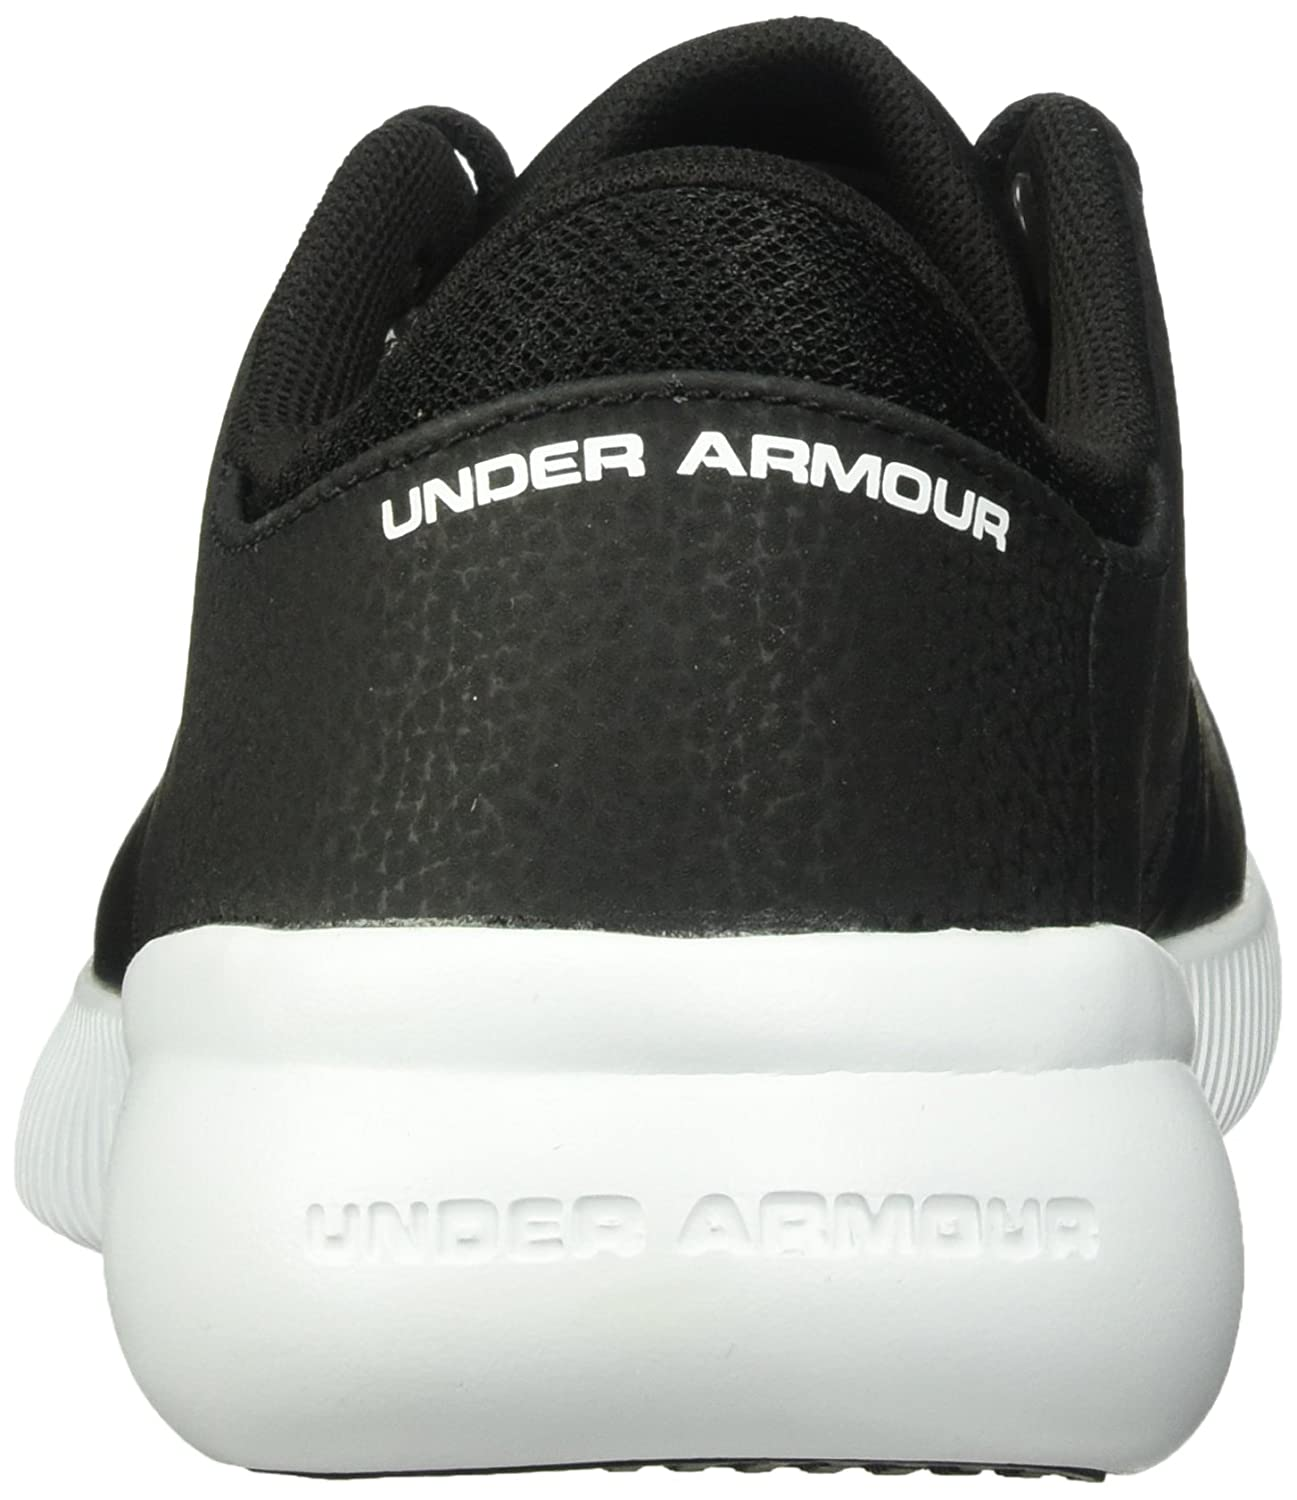 Men's/Women's Men's/Women's Men's/Women's Under Armour Men's Zone 3 Sneaker Innovative design discount At an affordable price d72723